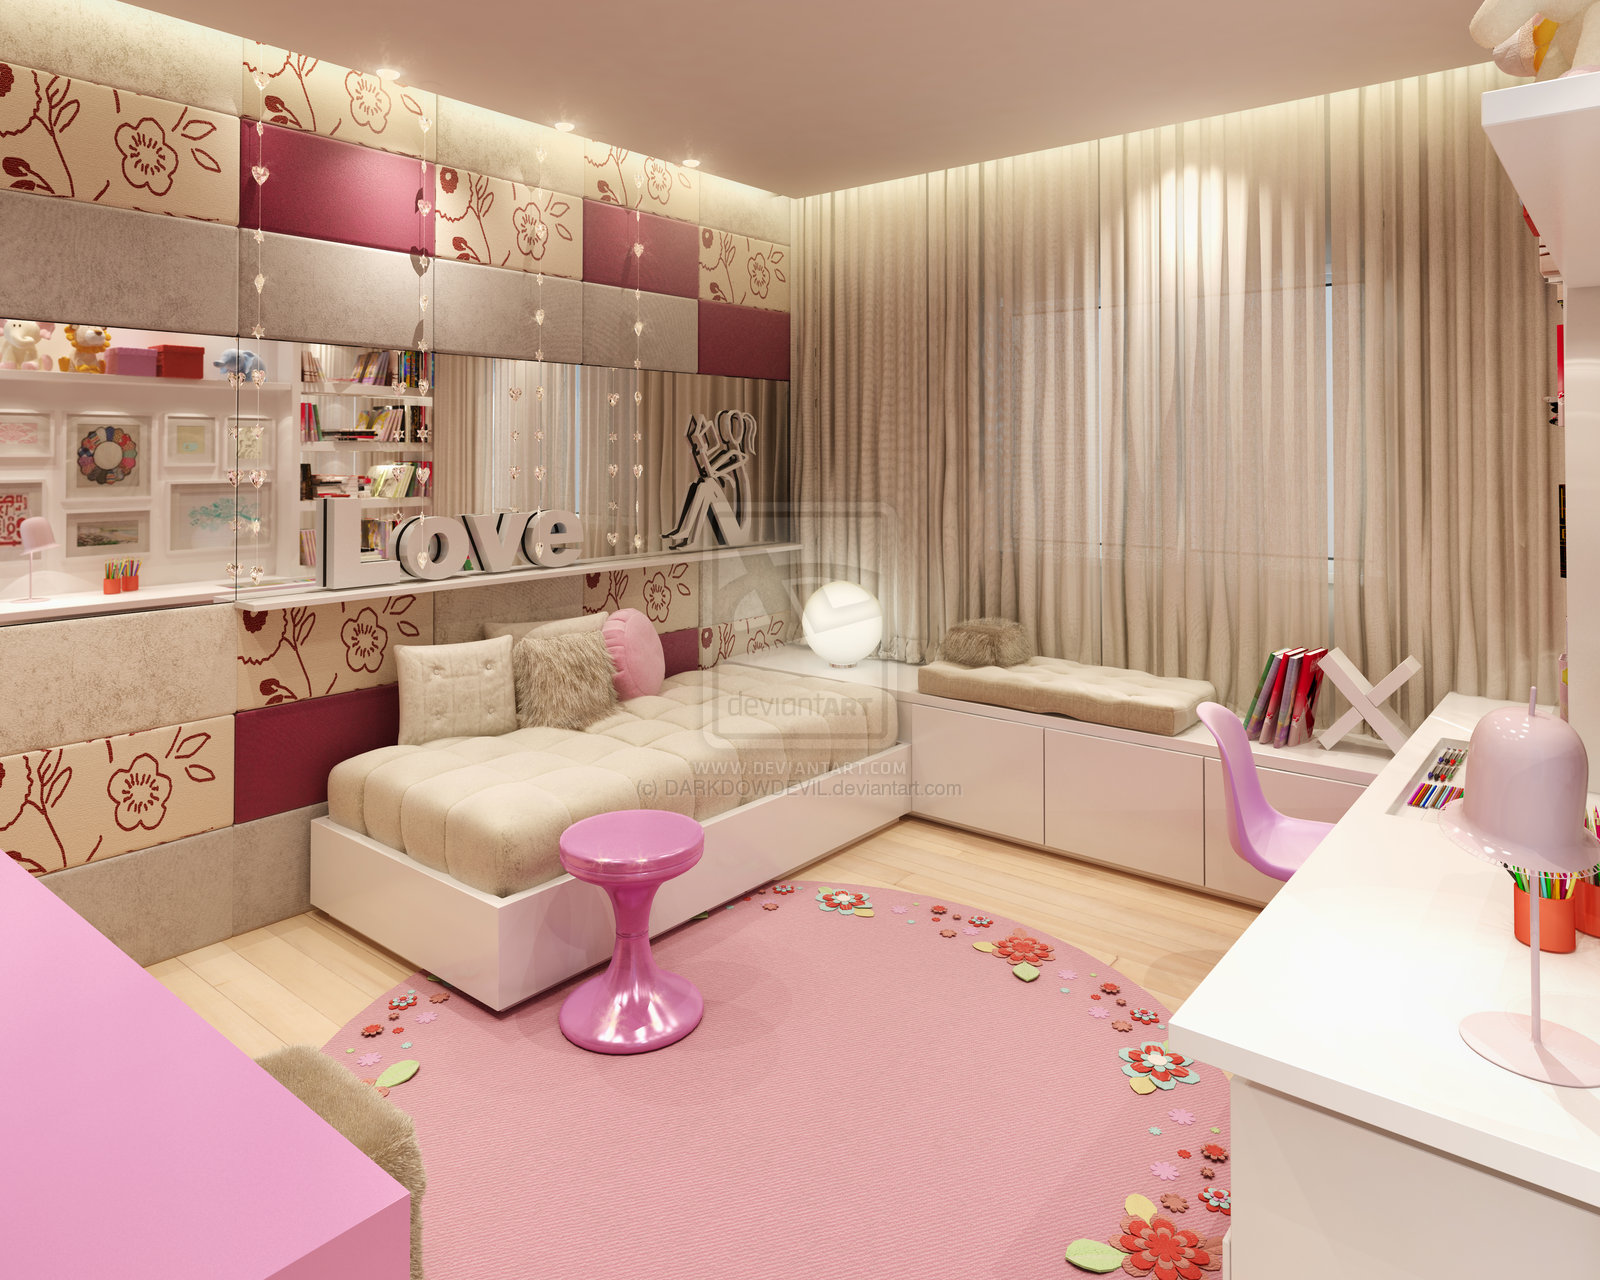 Girly bedroom design ideas wonderful Designer girl bedrooms pictures